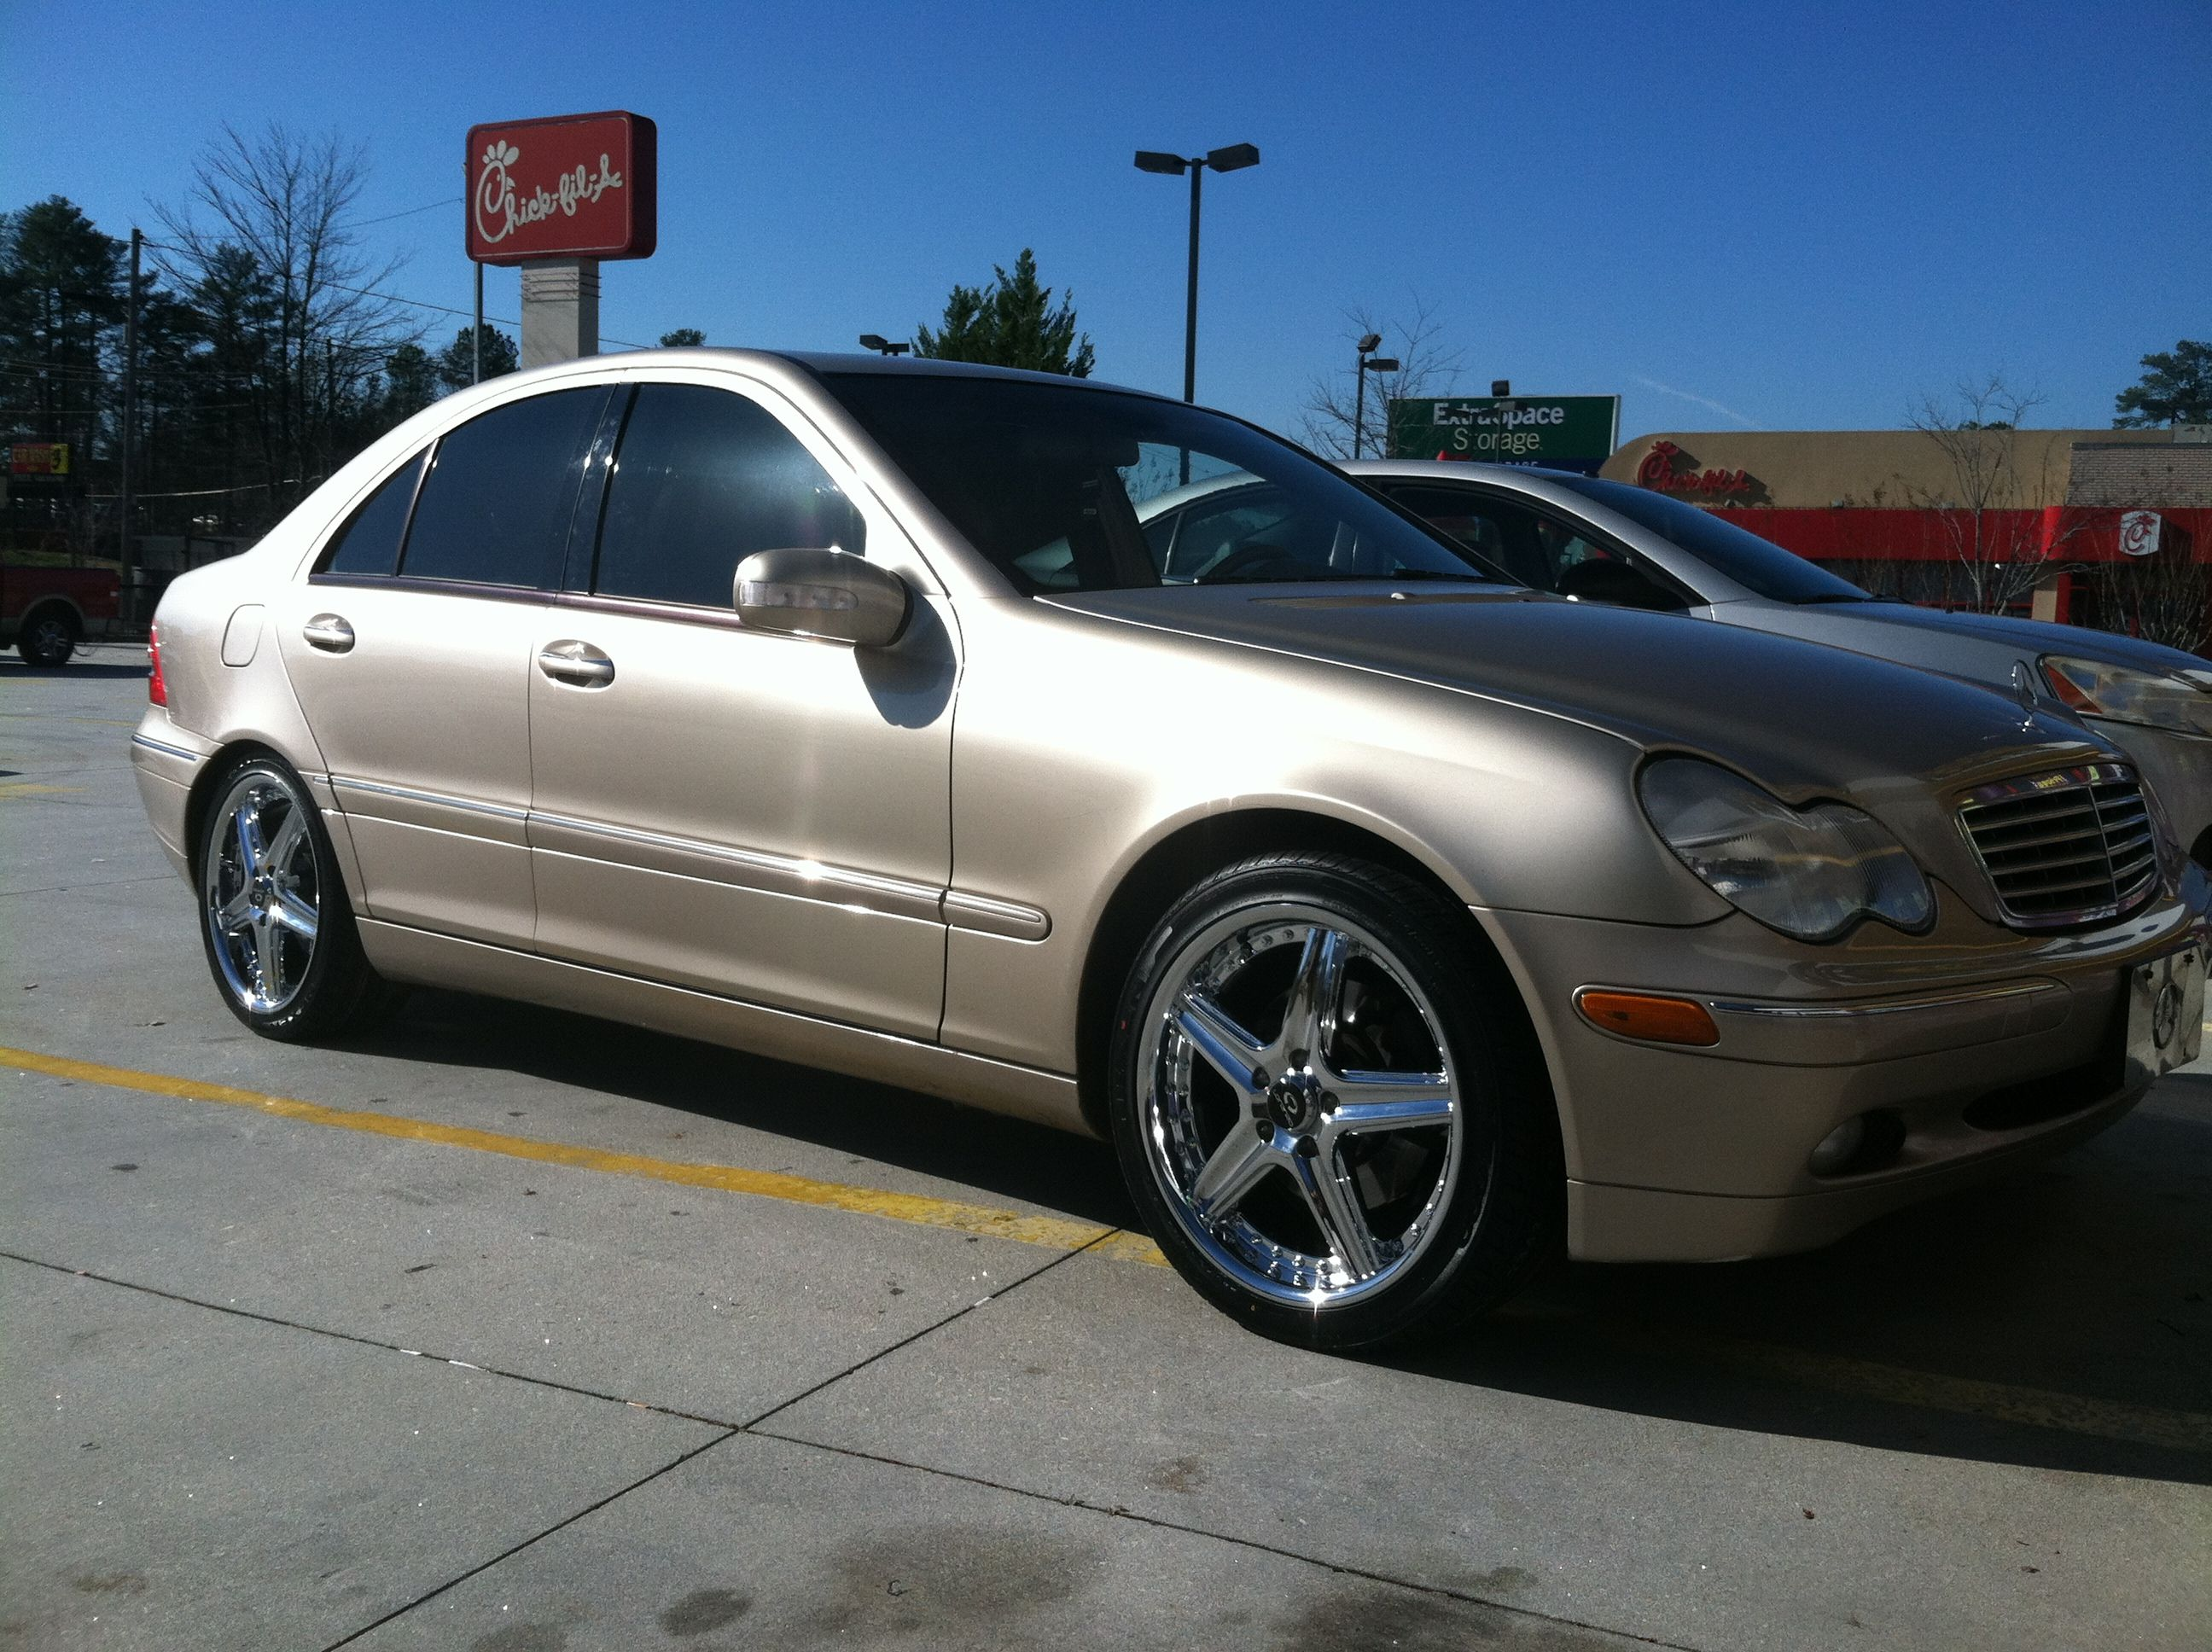 hight resolution of here s a close up of terrell hood s 2004 mercedes c240 sporting 18 lorenzo wl019 wheels photo taken at our stone mountain rimco store at 5540 memorial